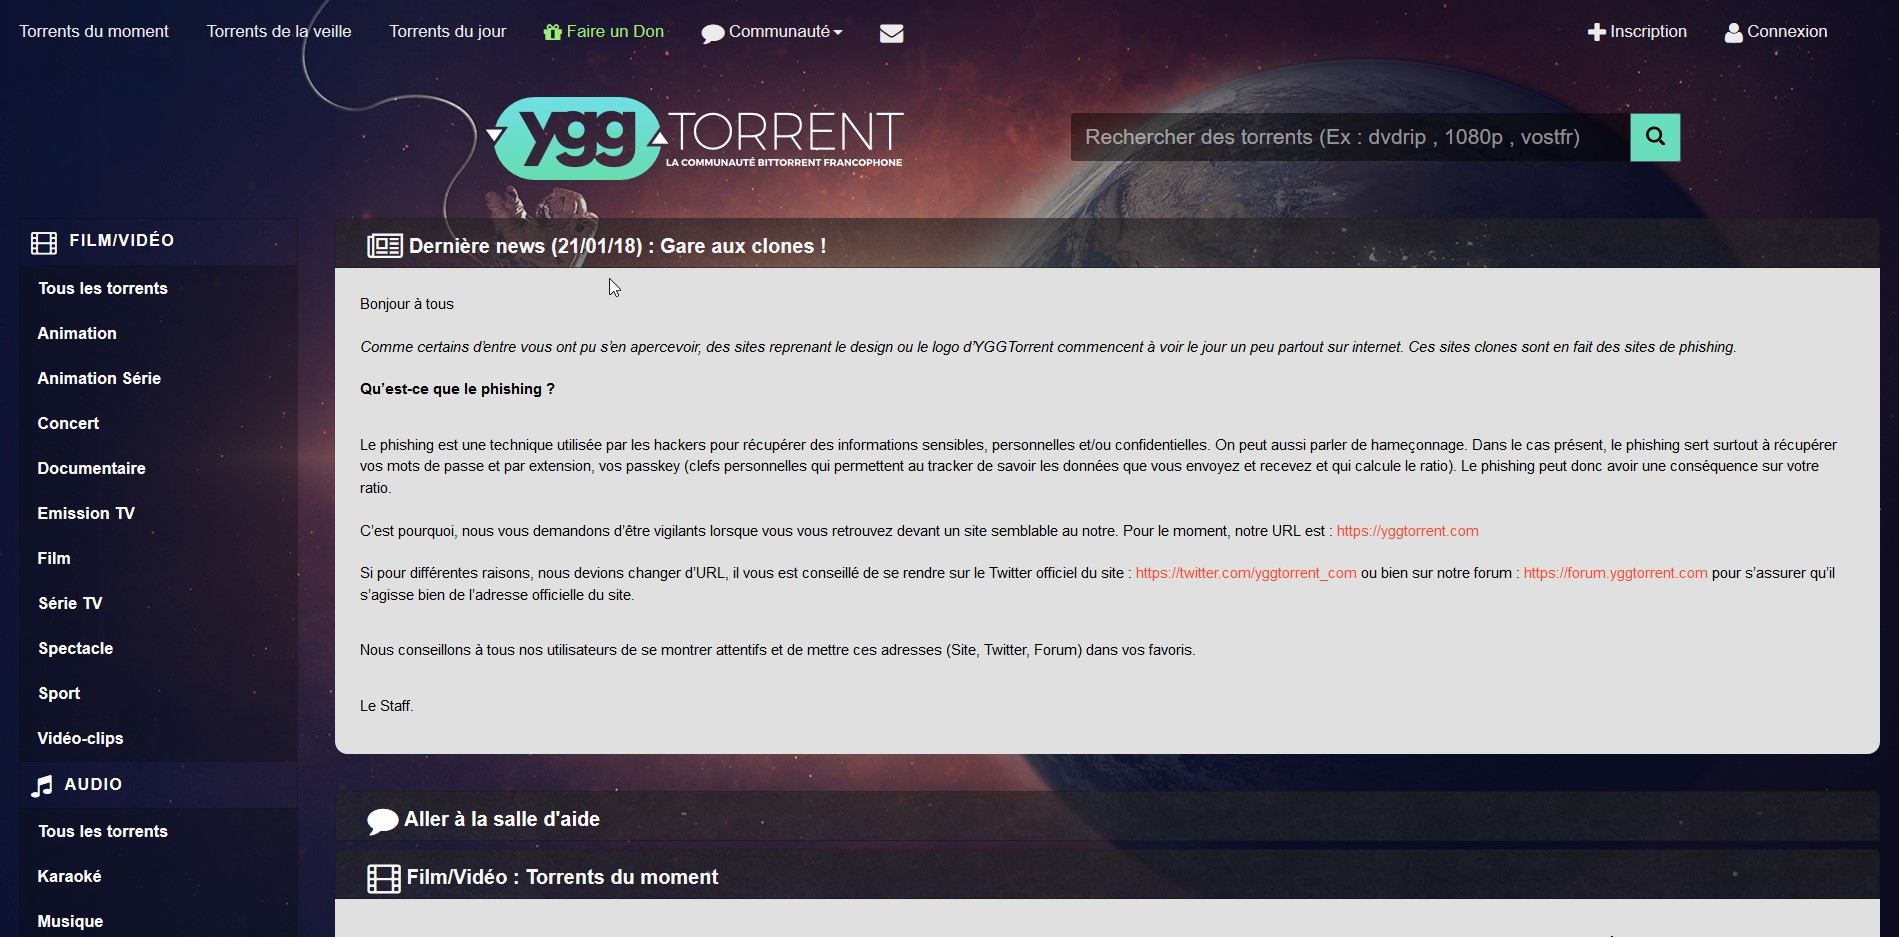 YggTorrent Alternatives and Similar Websites and Apps ...